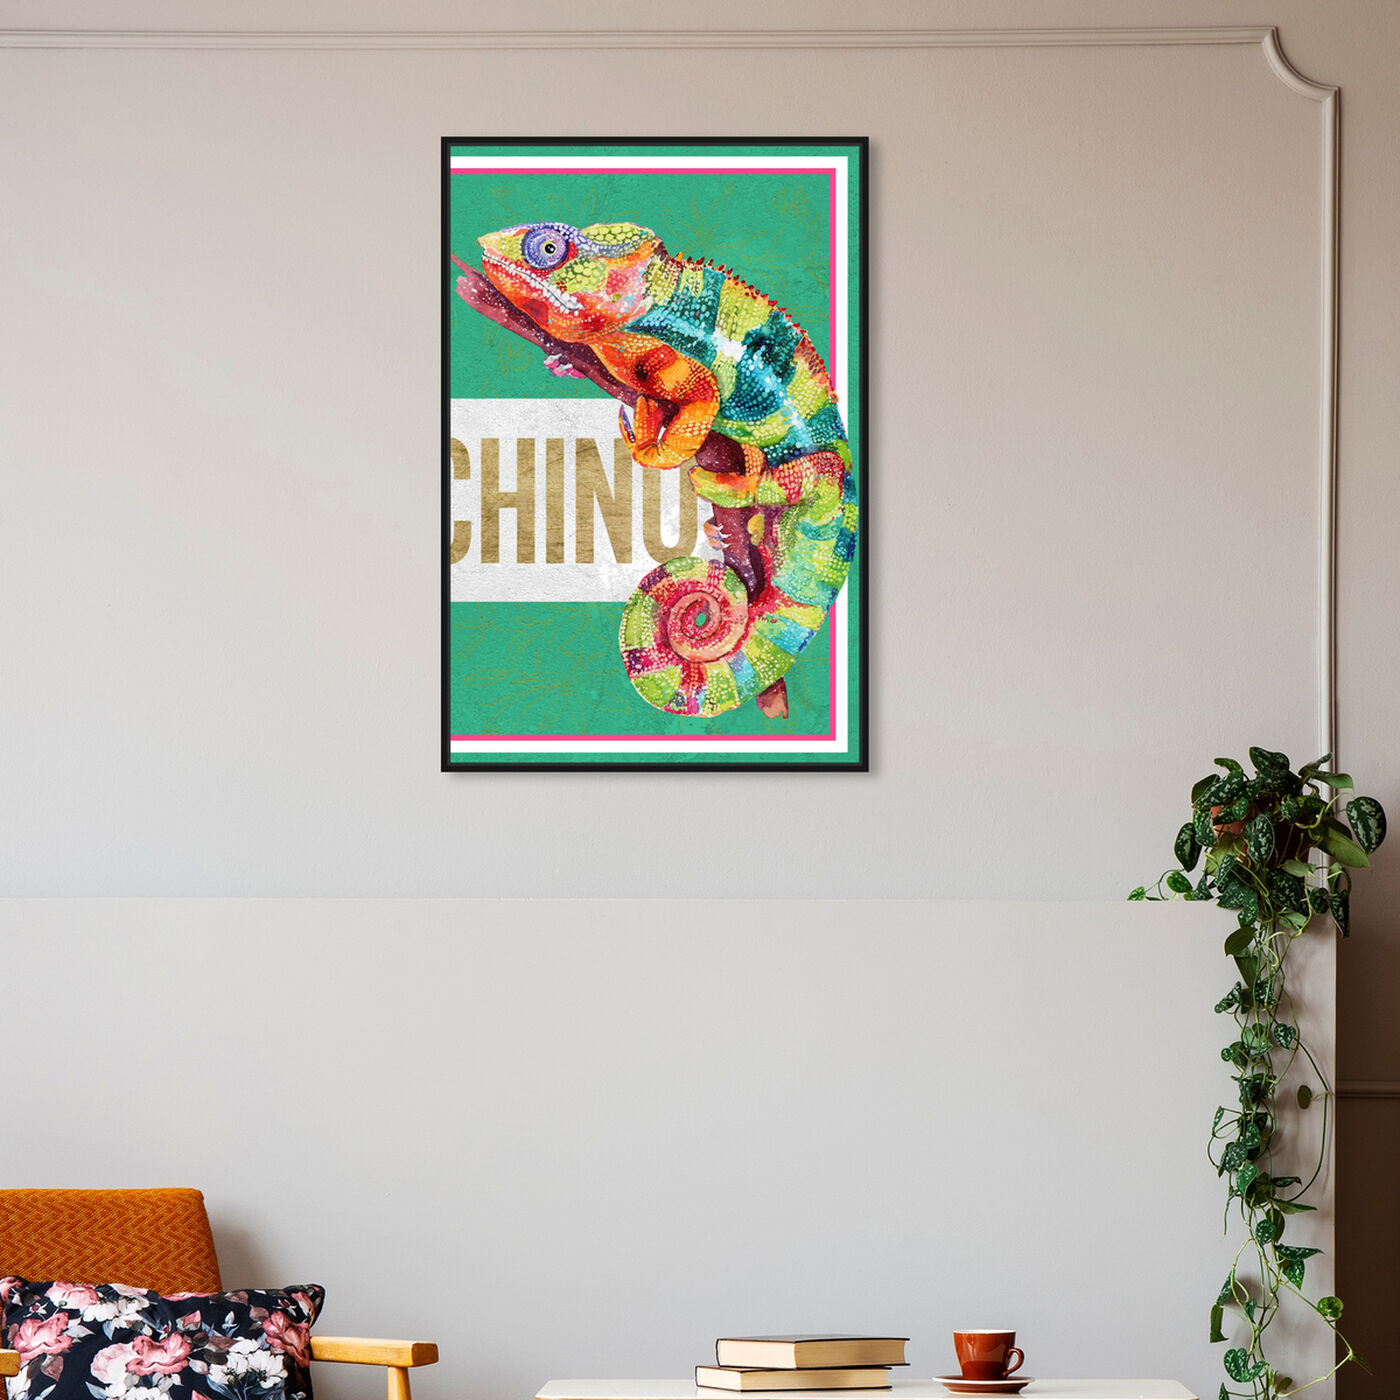 Hanging view of Colorful Right featuring fashion and glam and fashion lifestyle art.